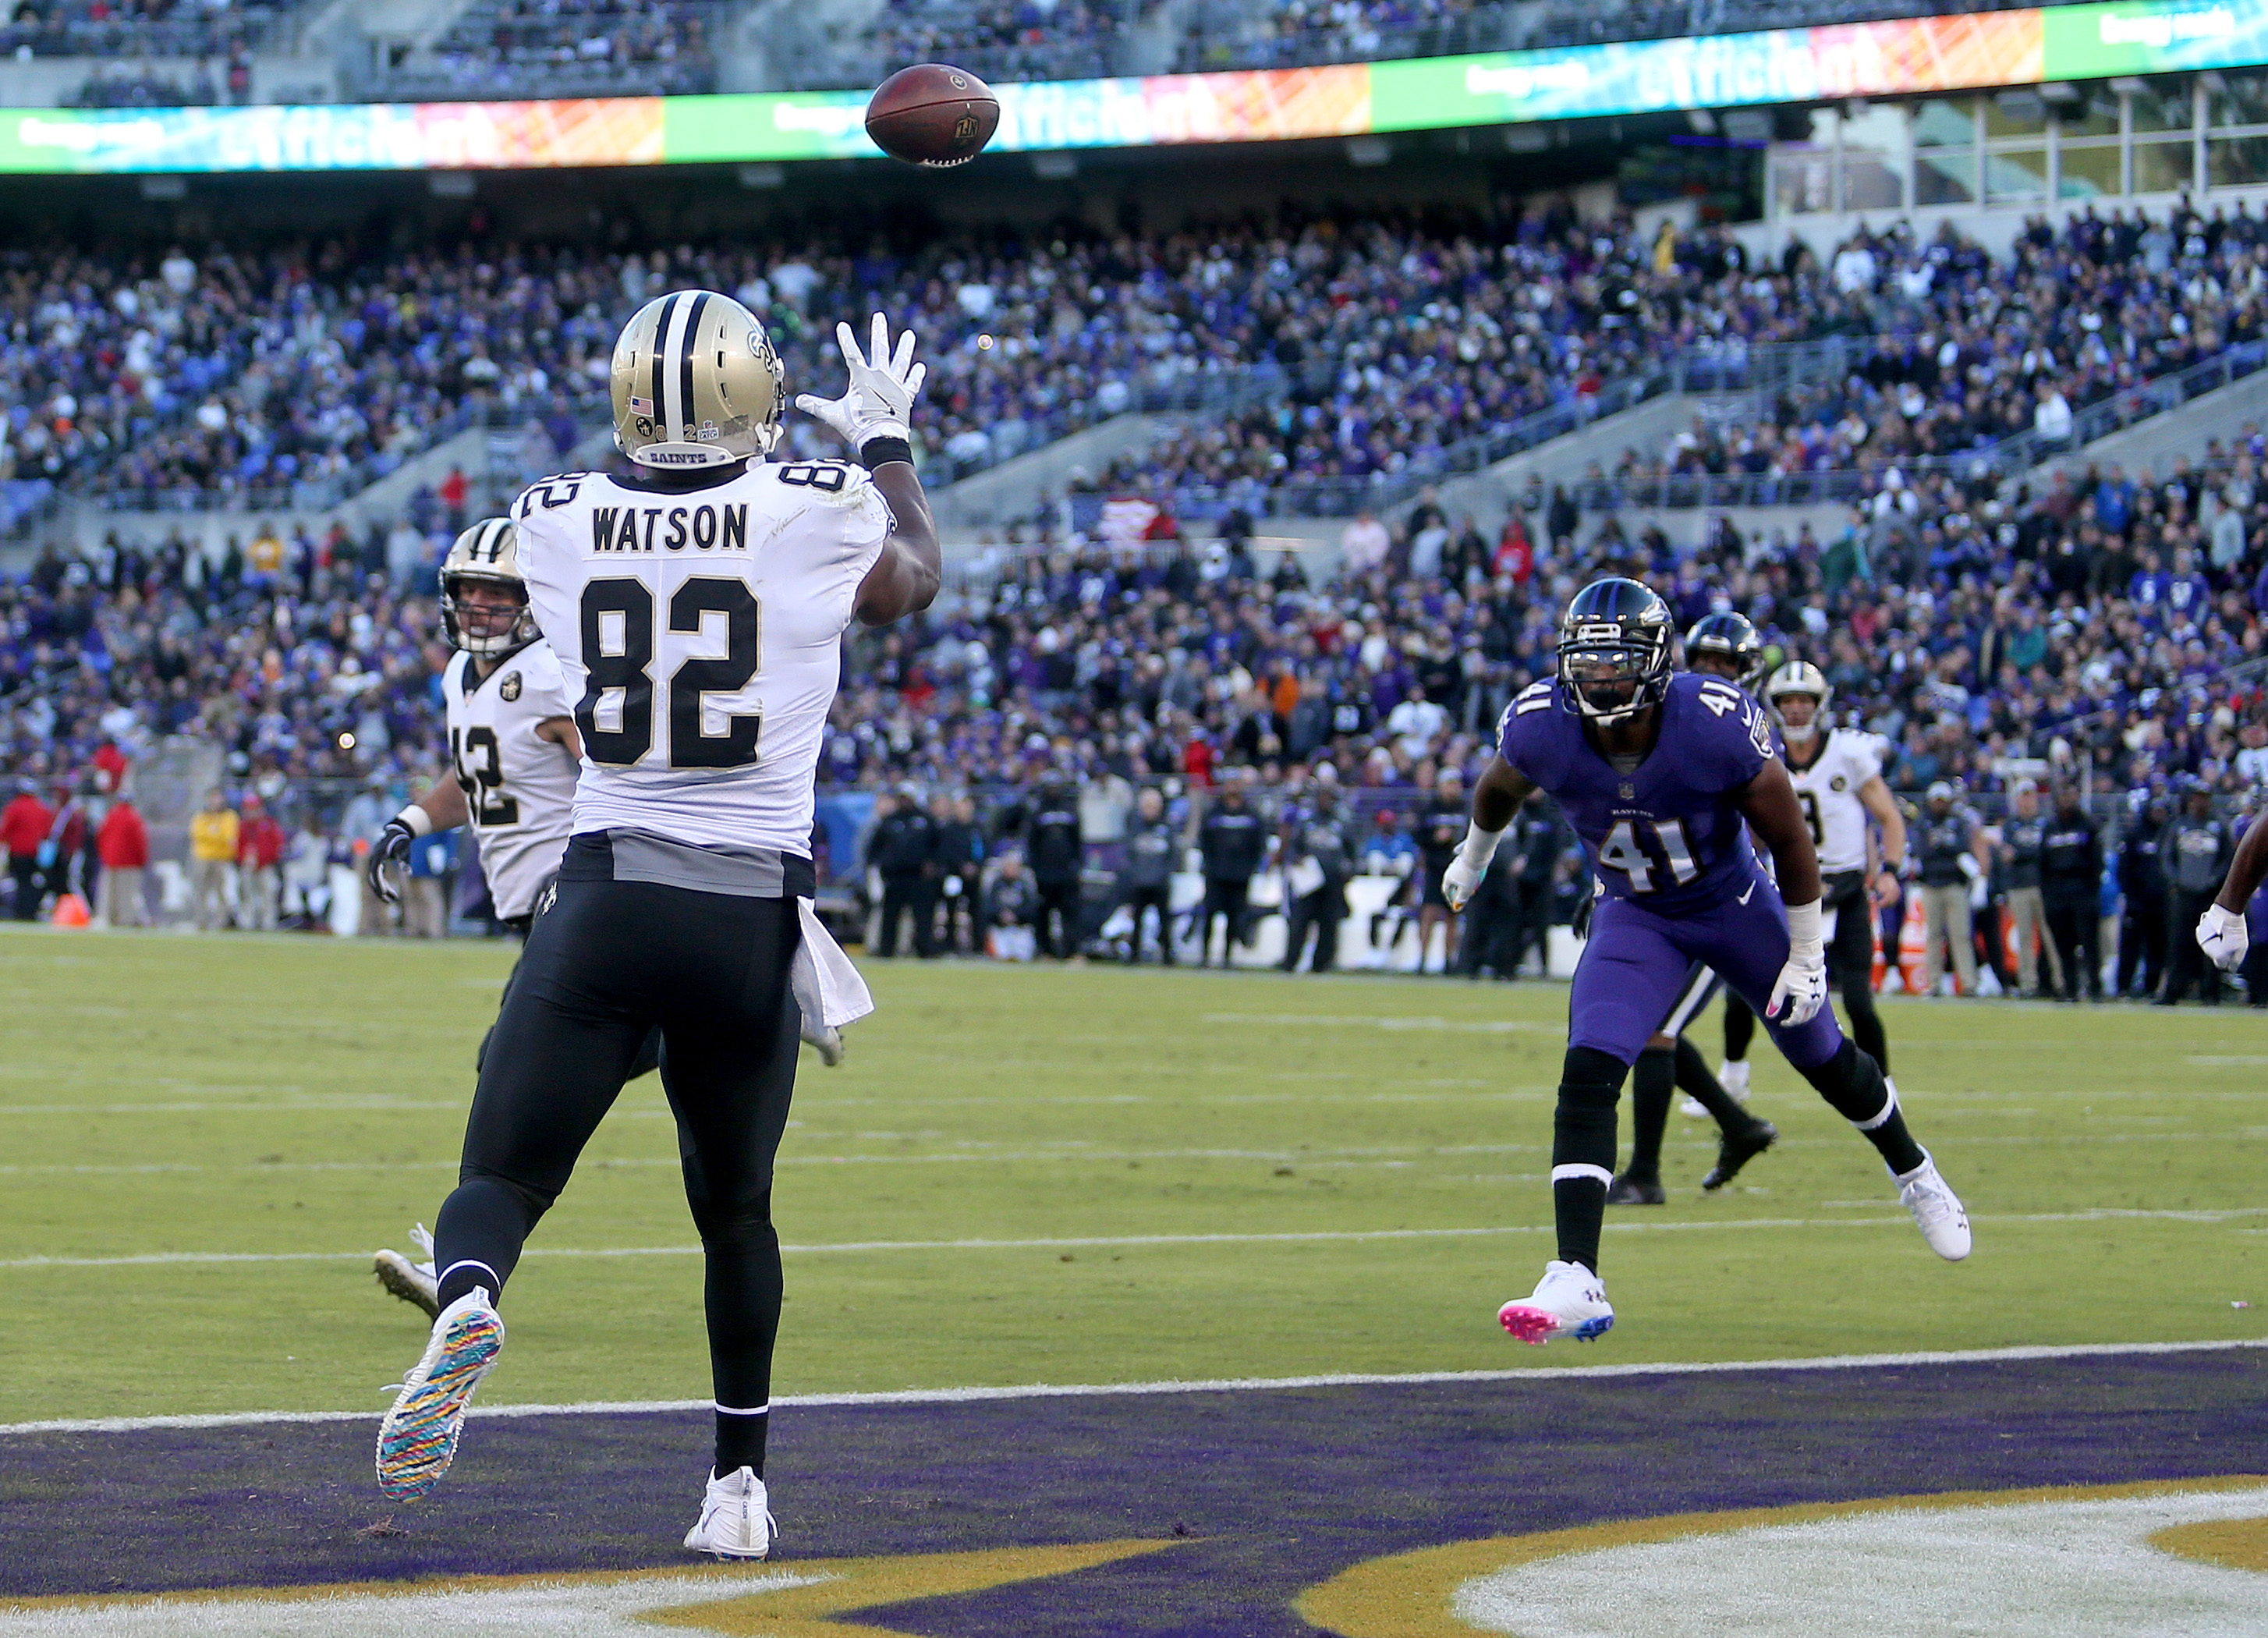 New Orleans Saints tight end Benjamin Watson (82) catches Drew Brees' 500th touchdown during the game between the New Orleans Saints and Baltimore Ravens at M&T Bank Stadium on Sunday, October 21, 2018. (Photo by Michael DeMocker, NOLA.com | The Times-Picayune)